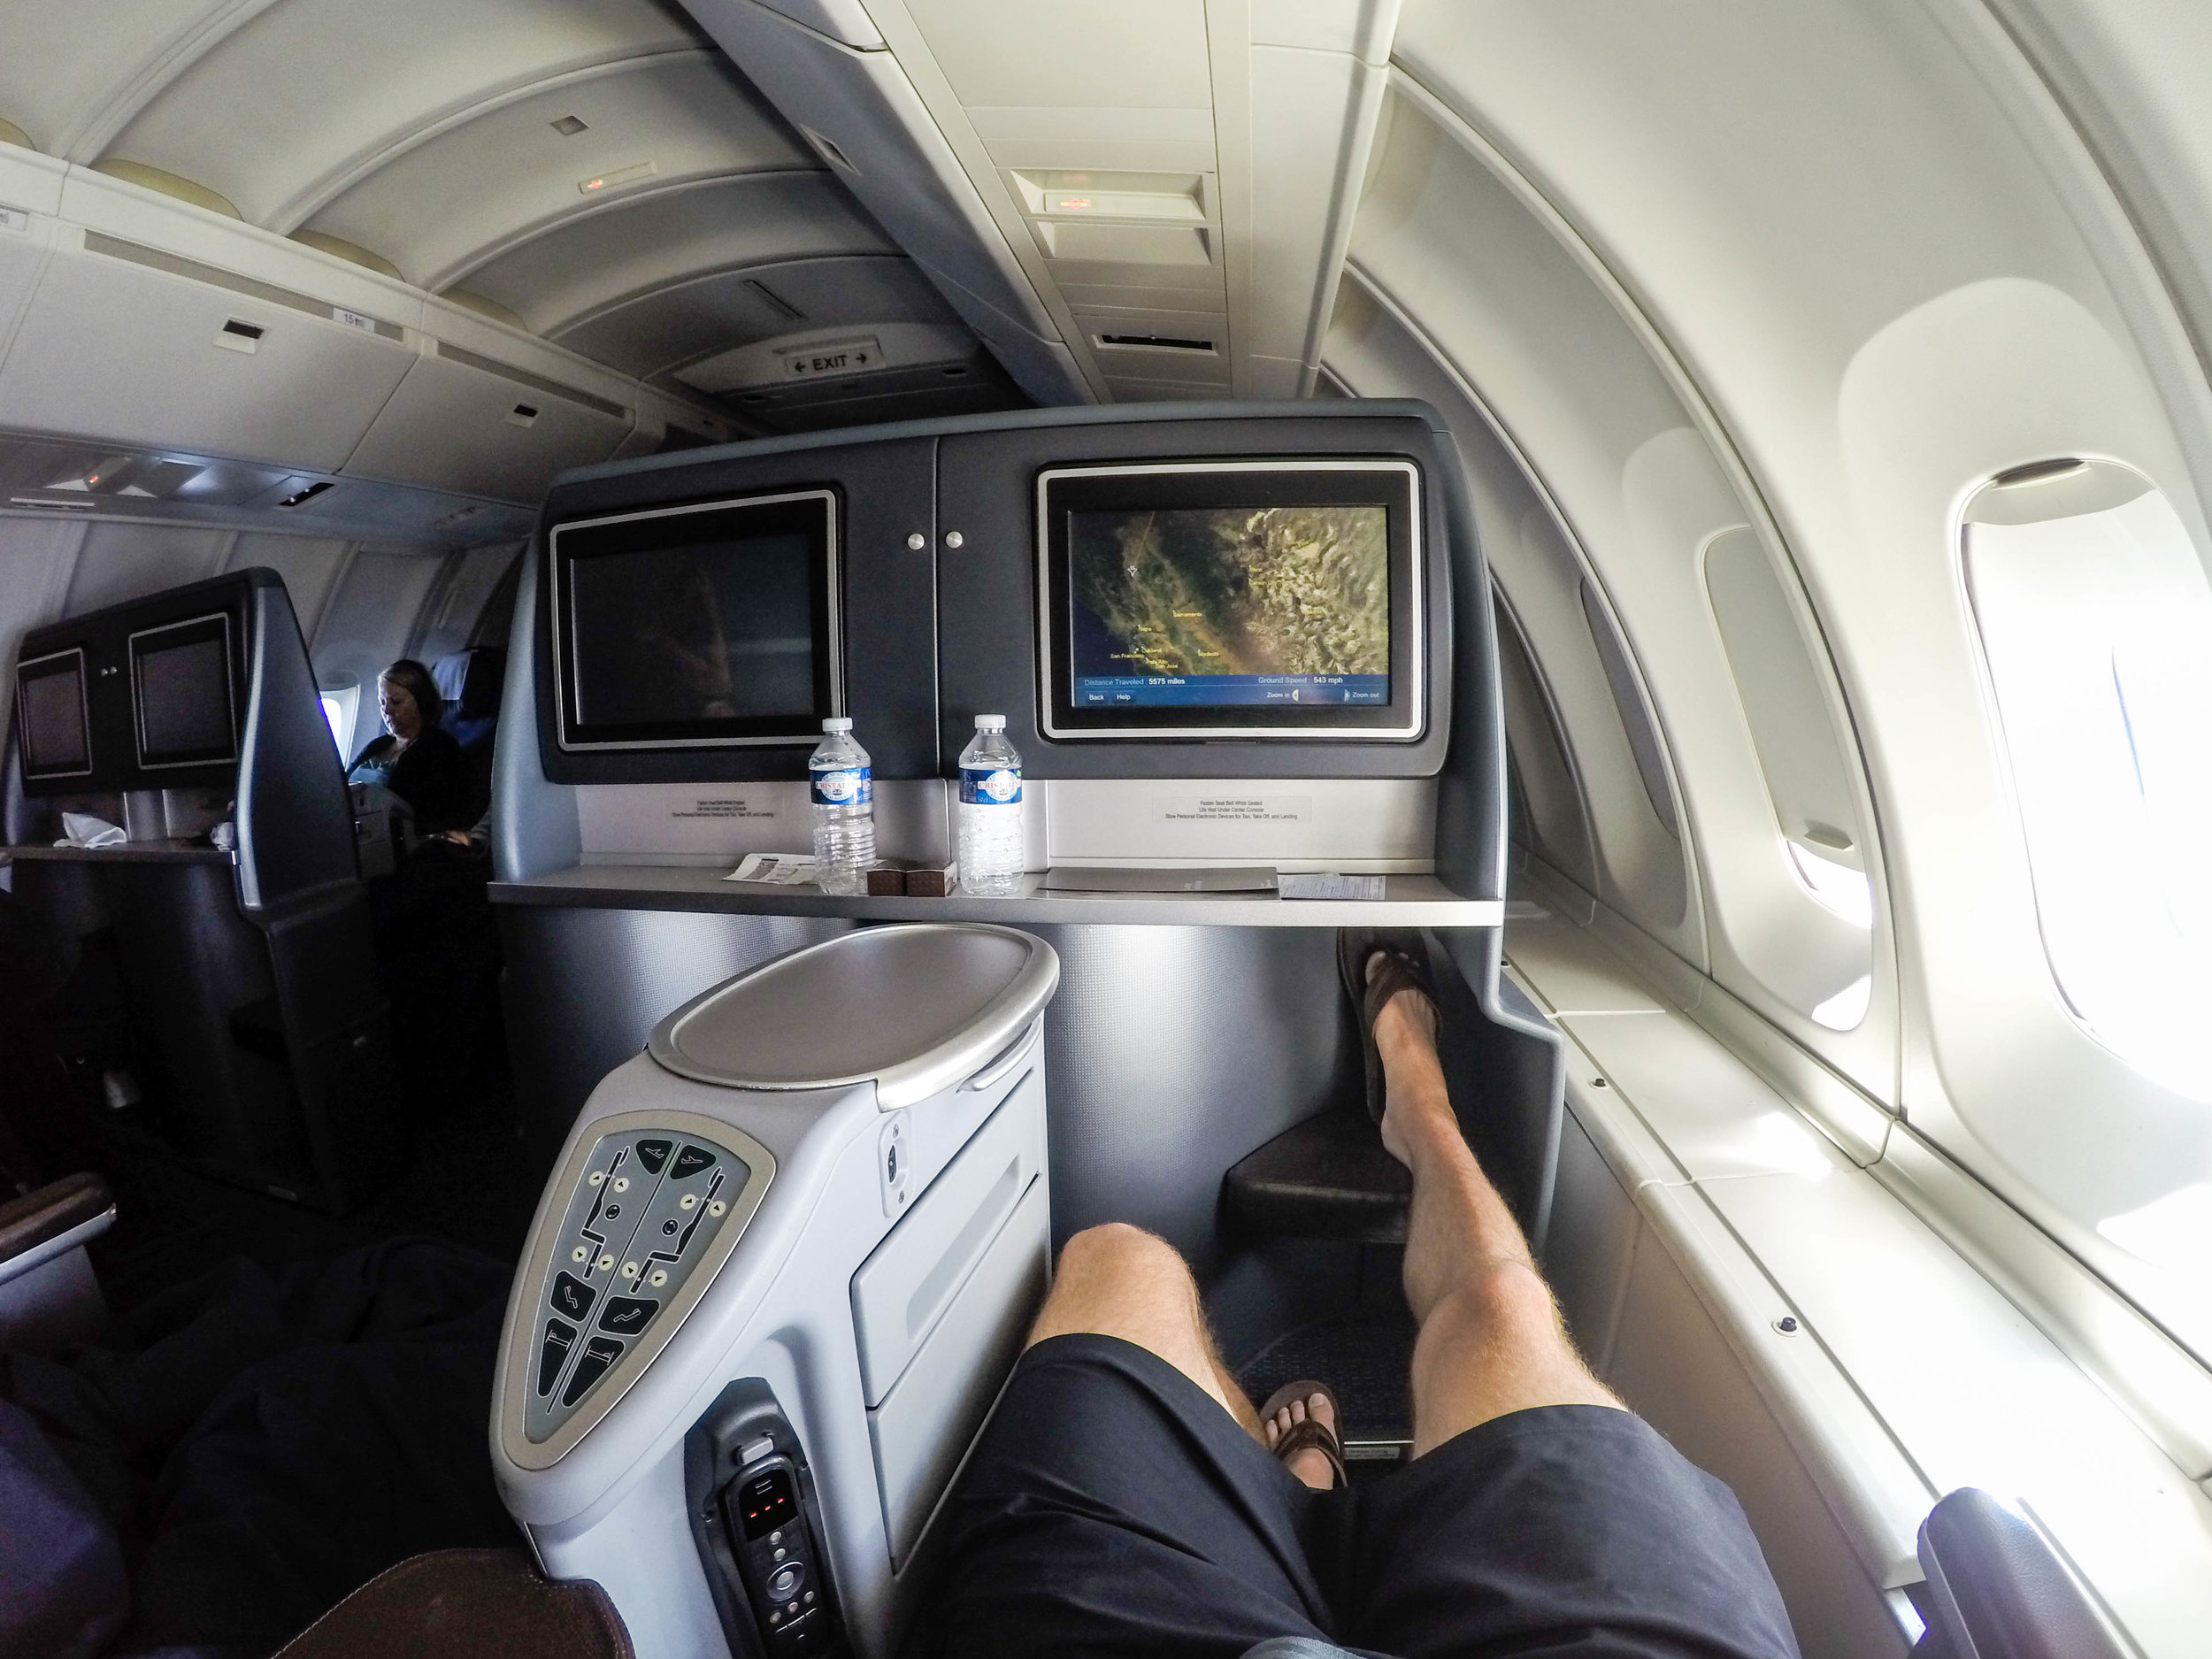 Flight Review - My second time flying in United's now retired 747-400 Upper Deck Business Class.